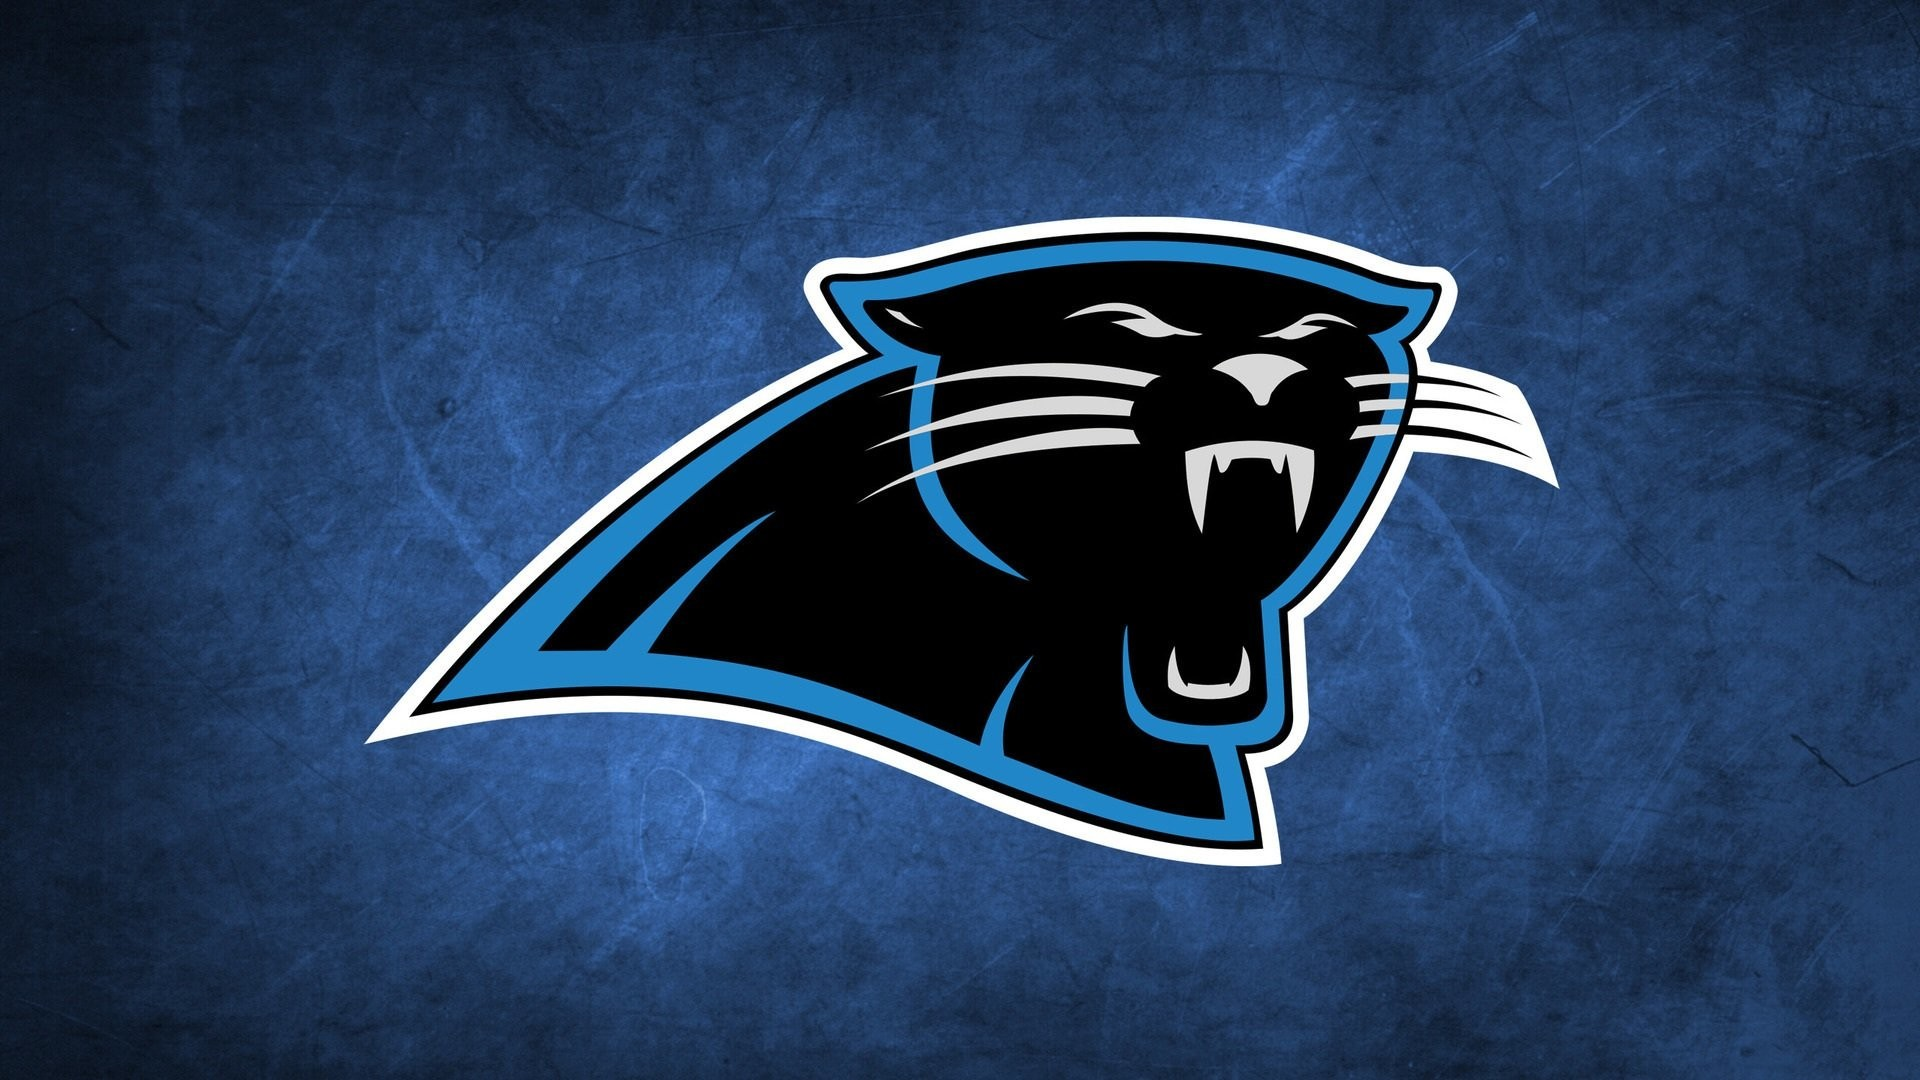 1920x1080 Logo panthers wallpapers carolina packers green pictures widescreen.